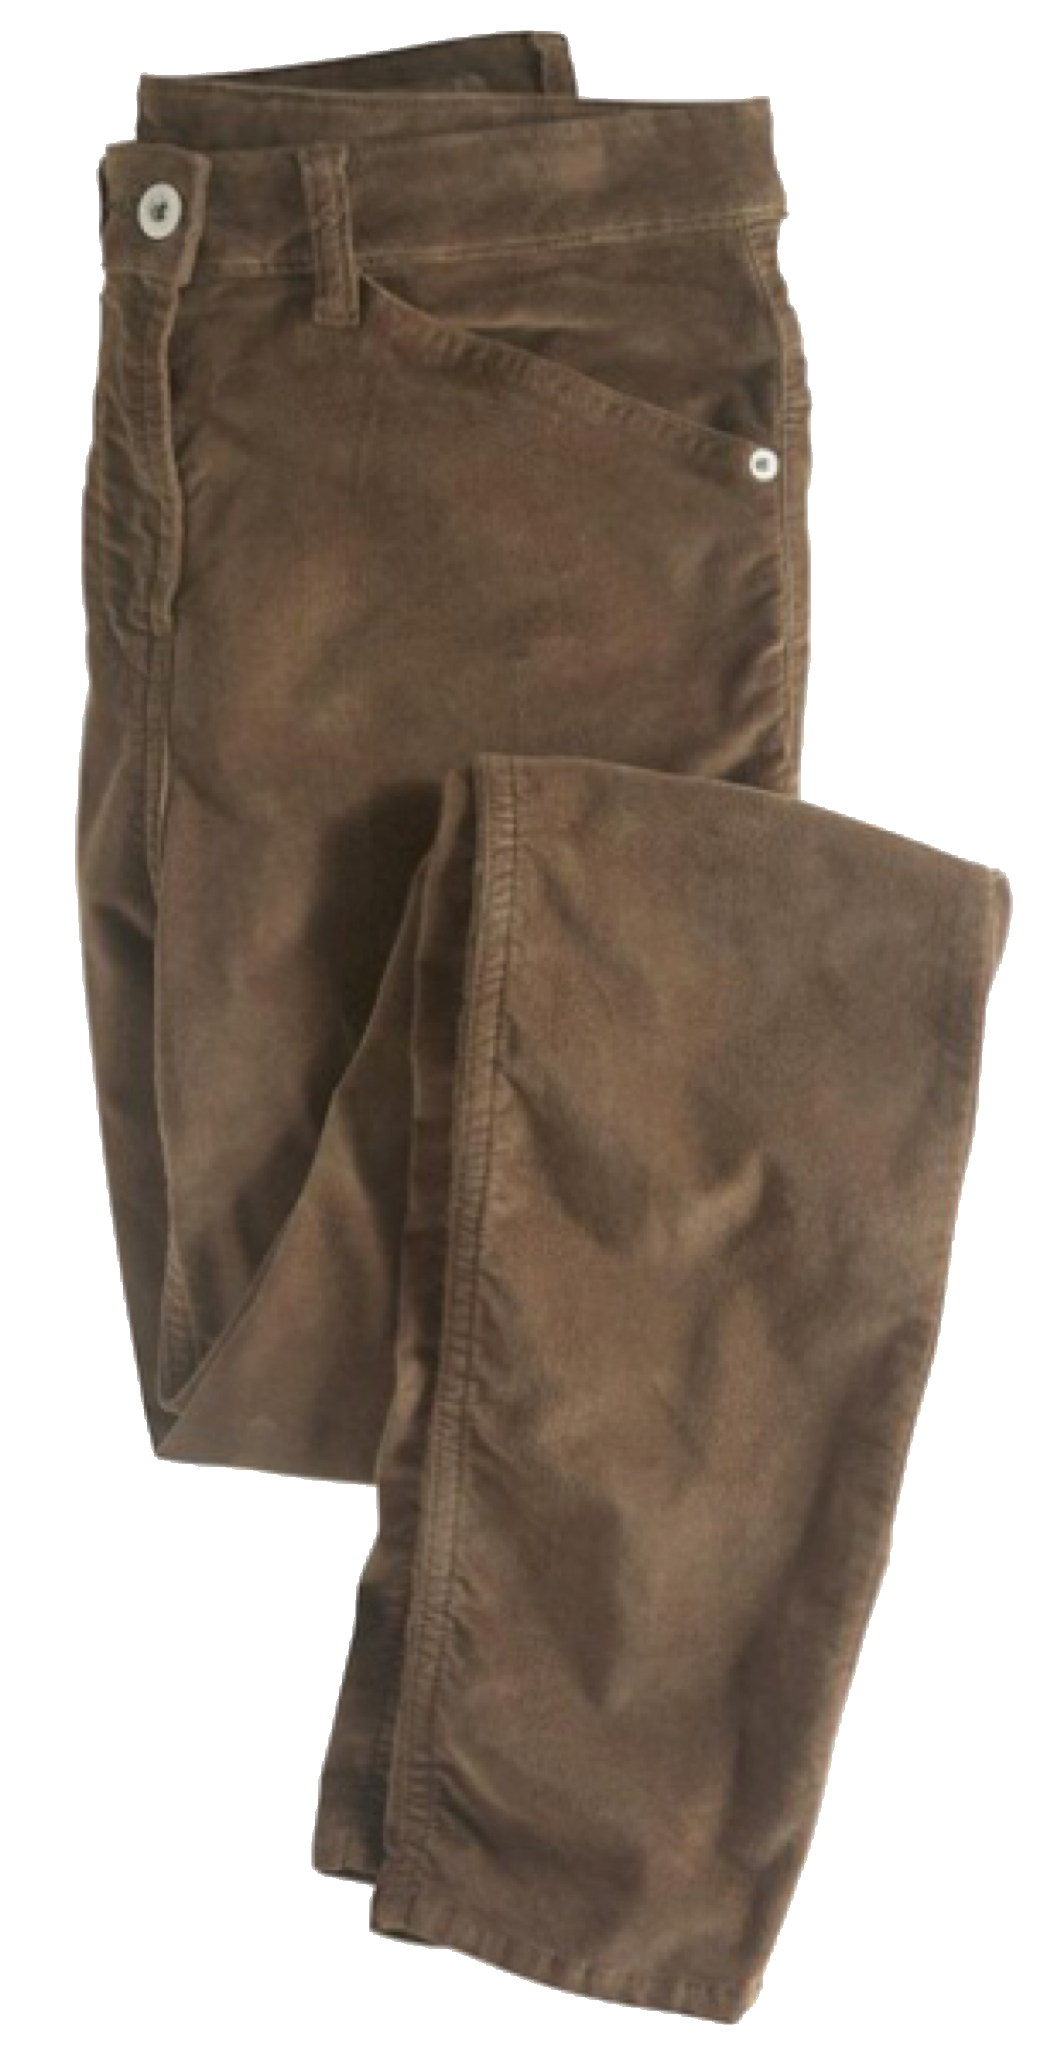 Clipart pants school trousers. From the wallace and